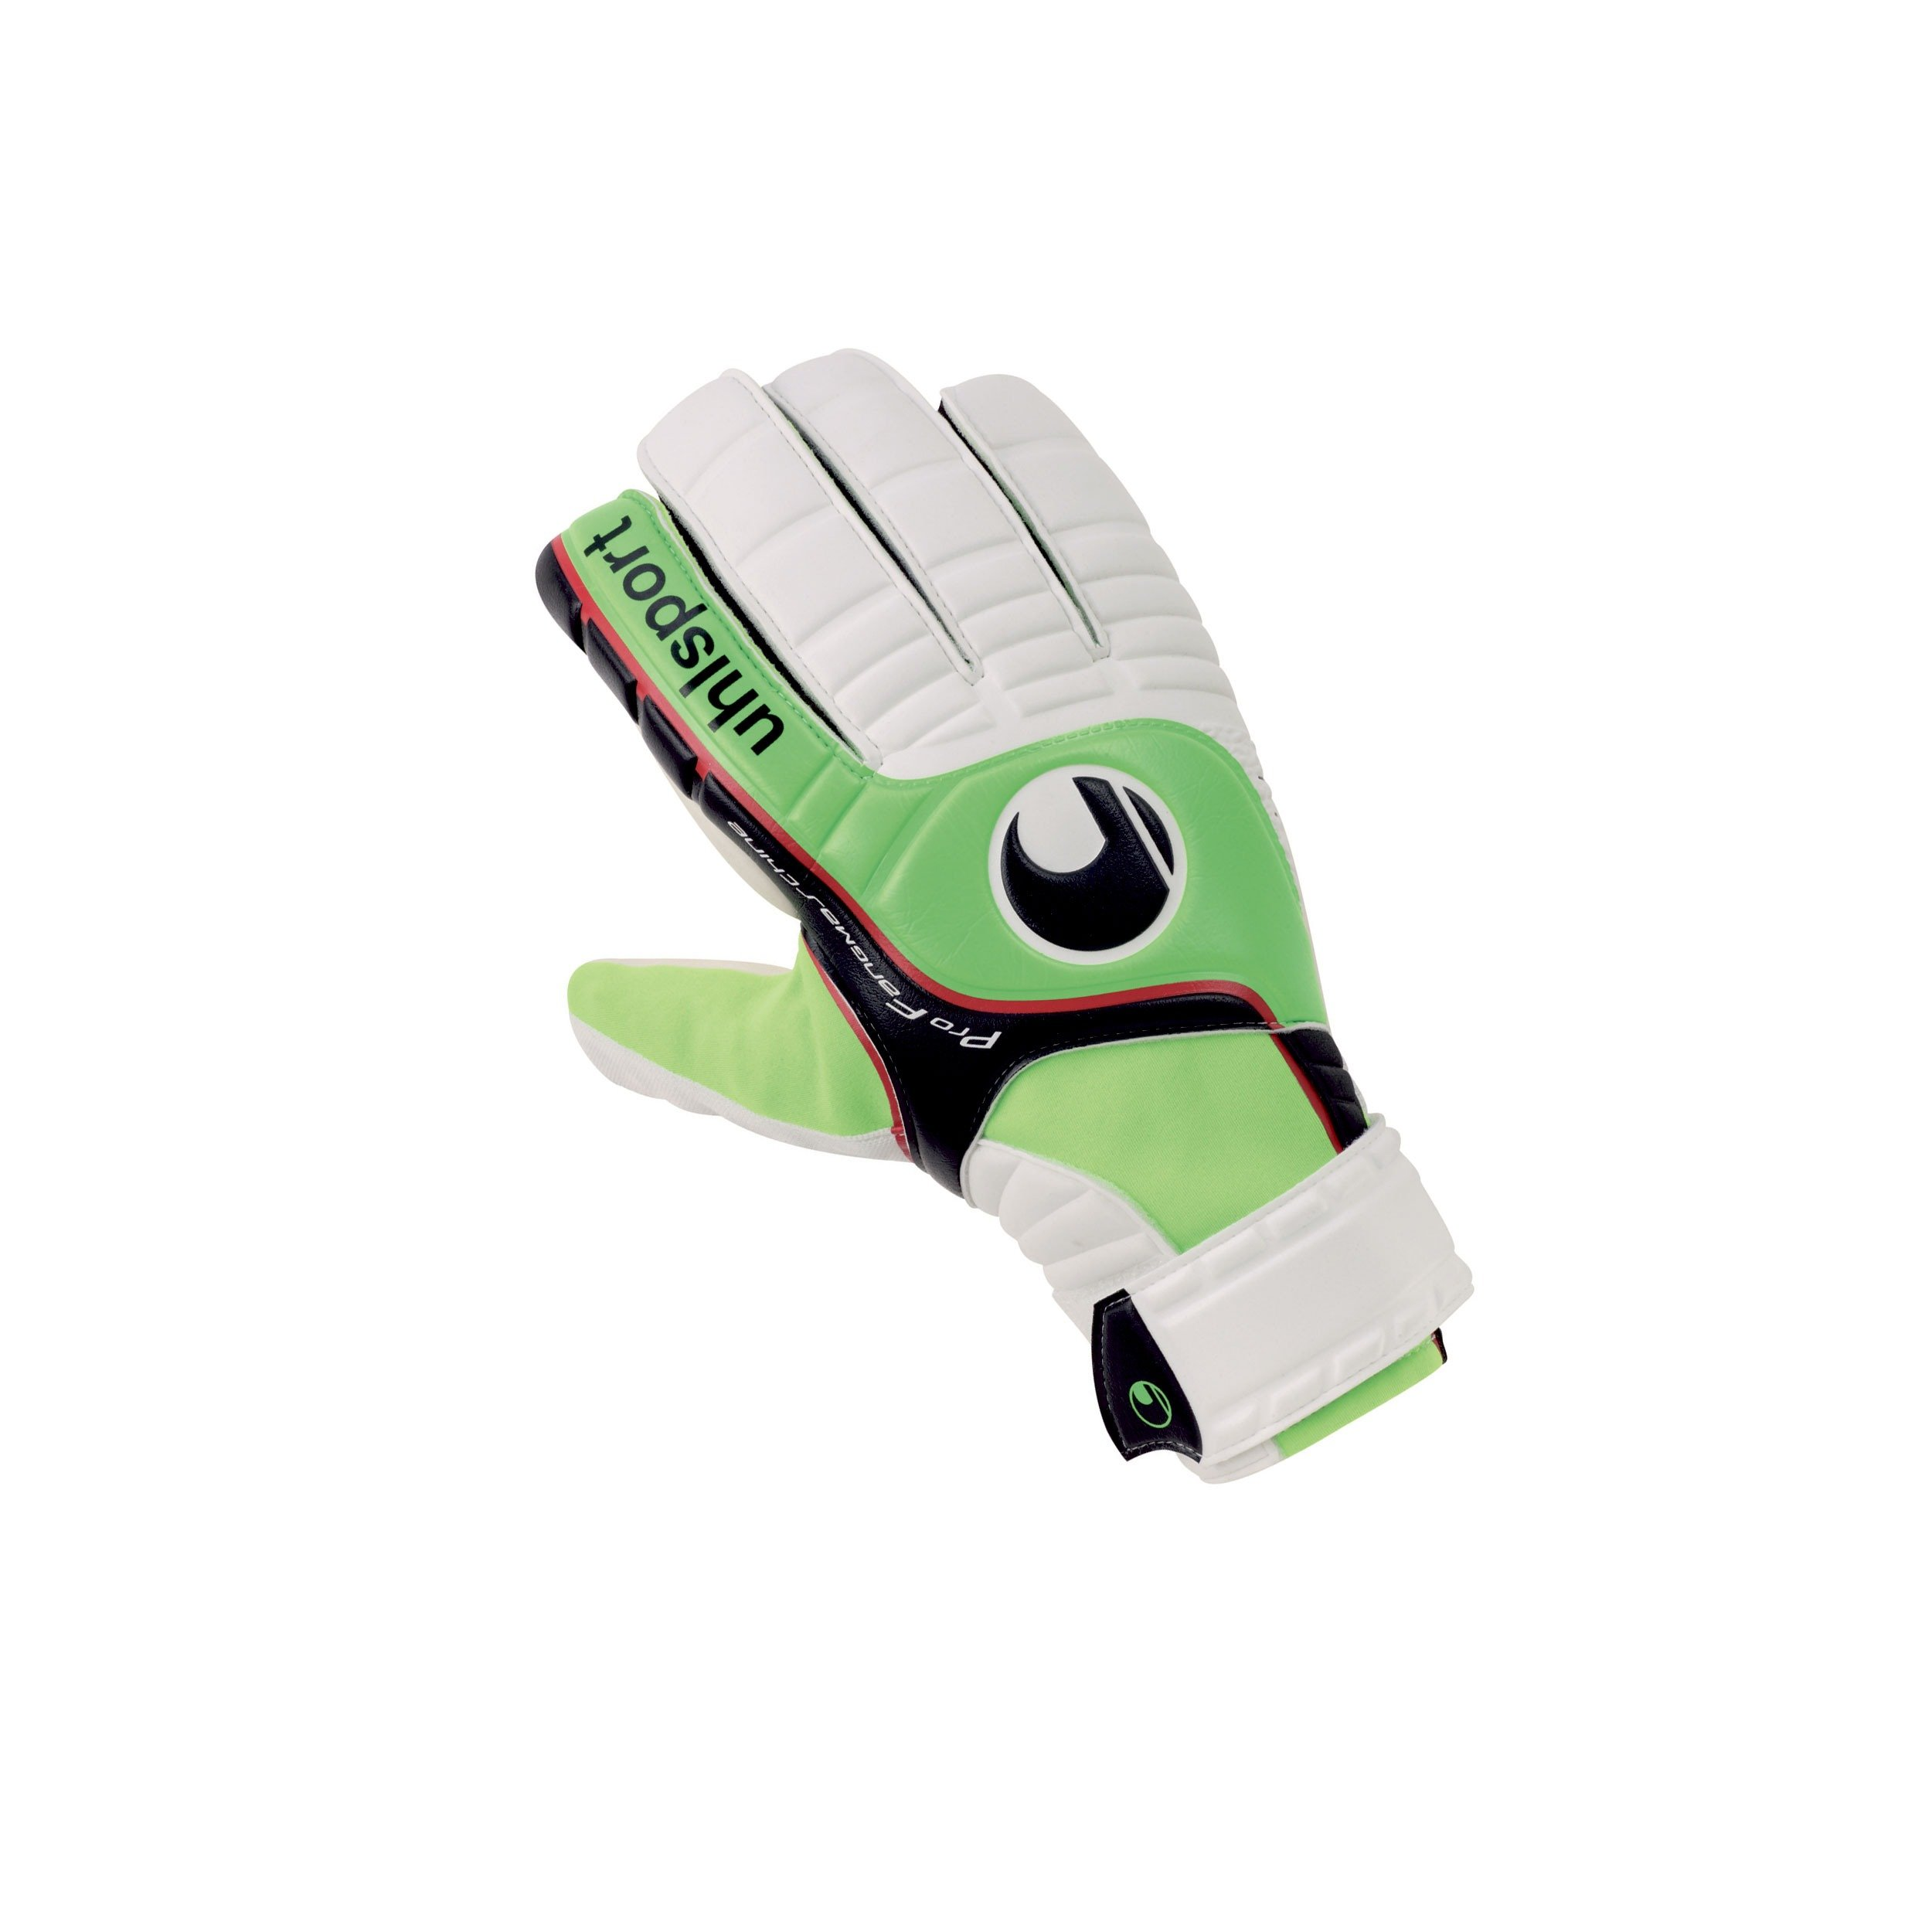 Uhlsport Uhlsport fangmachine soft hn fra billigsport24